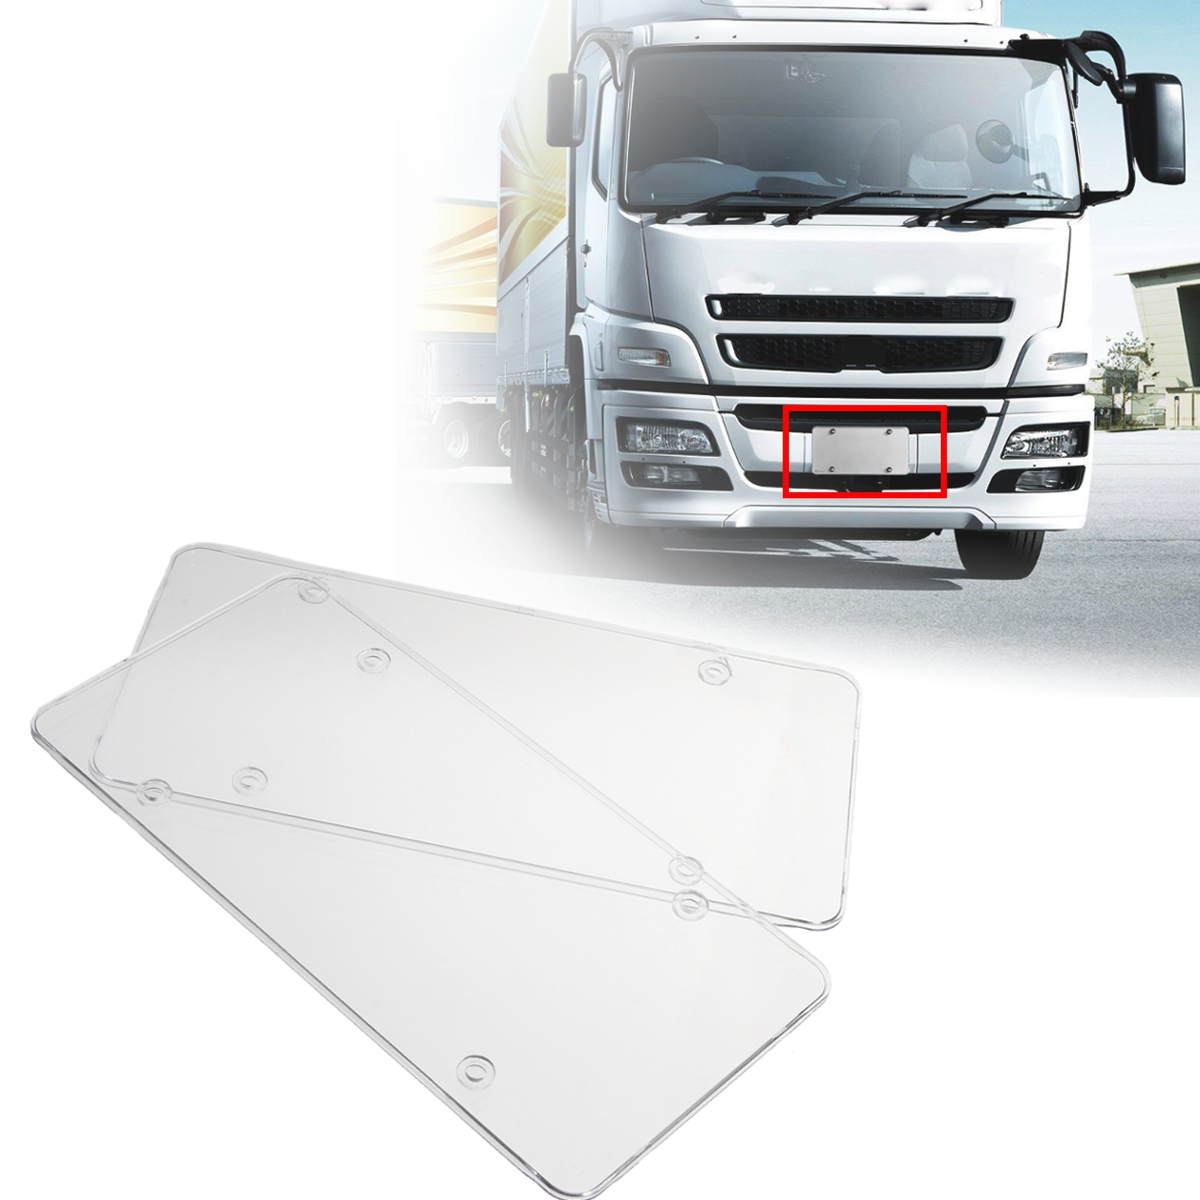 2Pcs Clear License Plate Cover Frame Cover Shield Protector Car Truck 6/'/' x 12/'